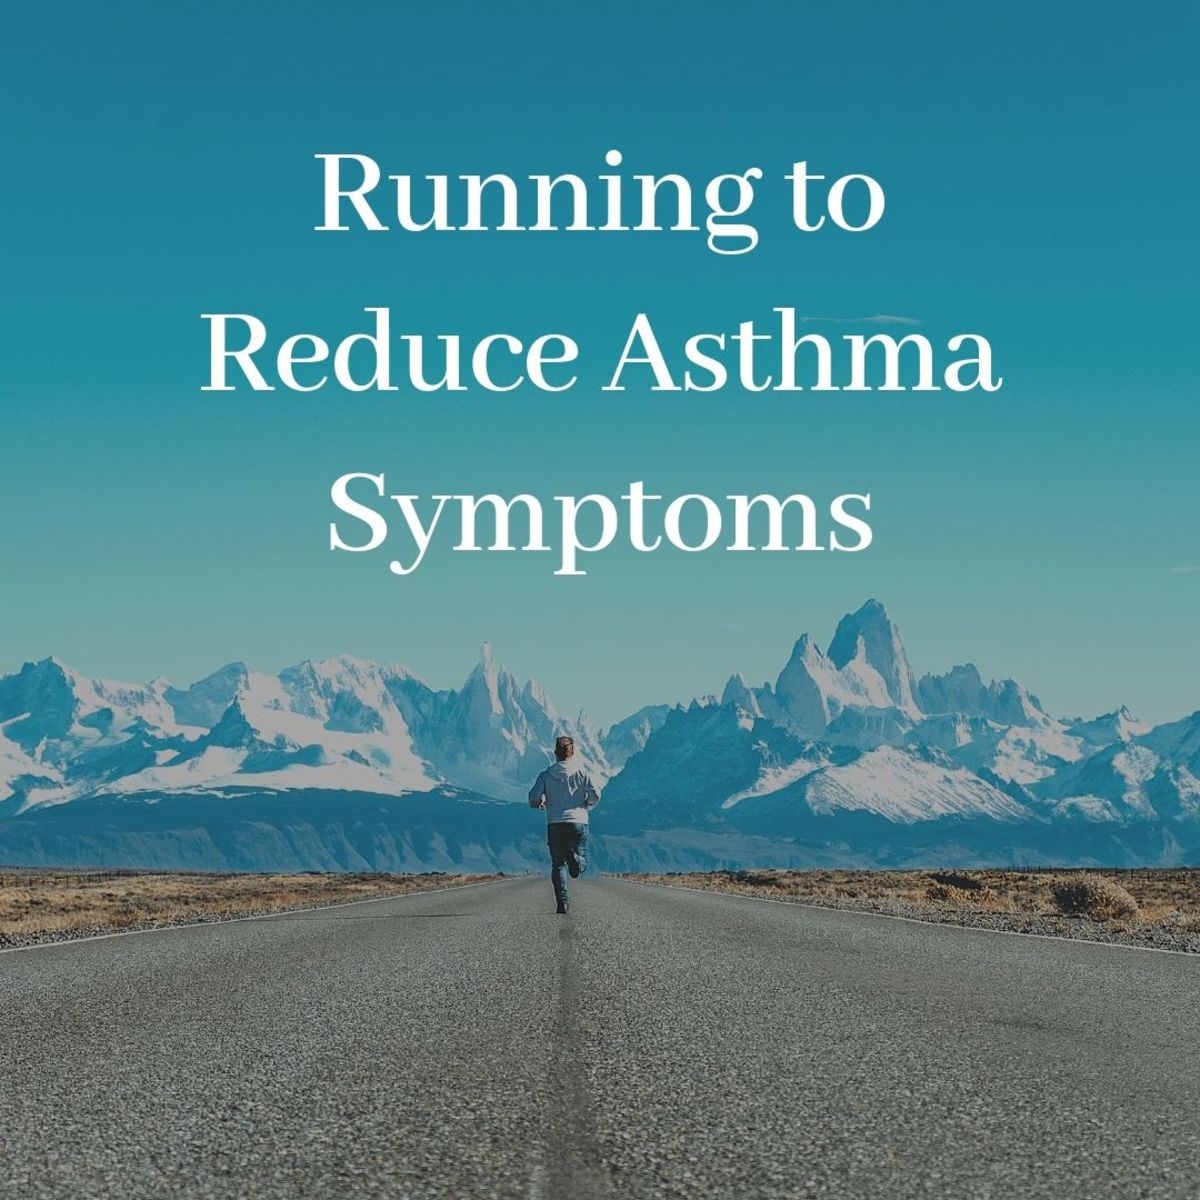 Why You Should Try Running to Reduce Asthma Symptoms